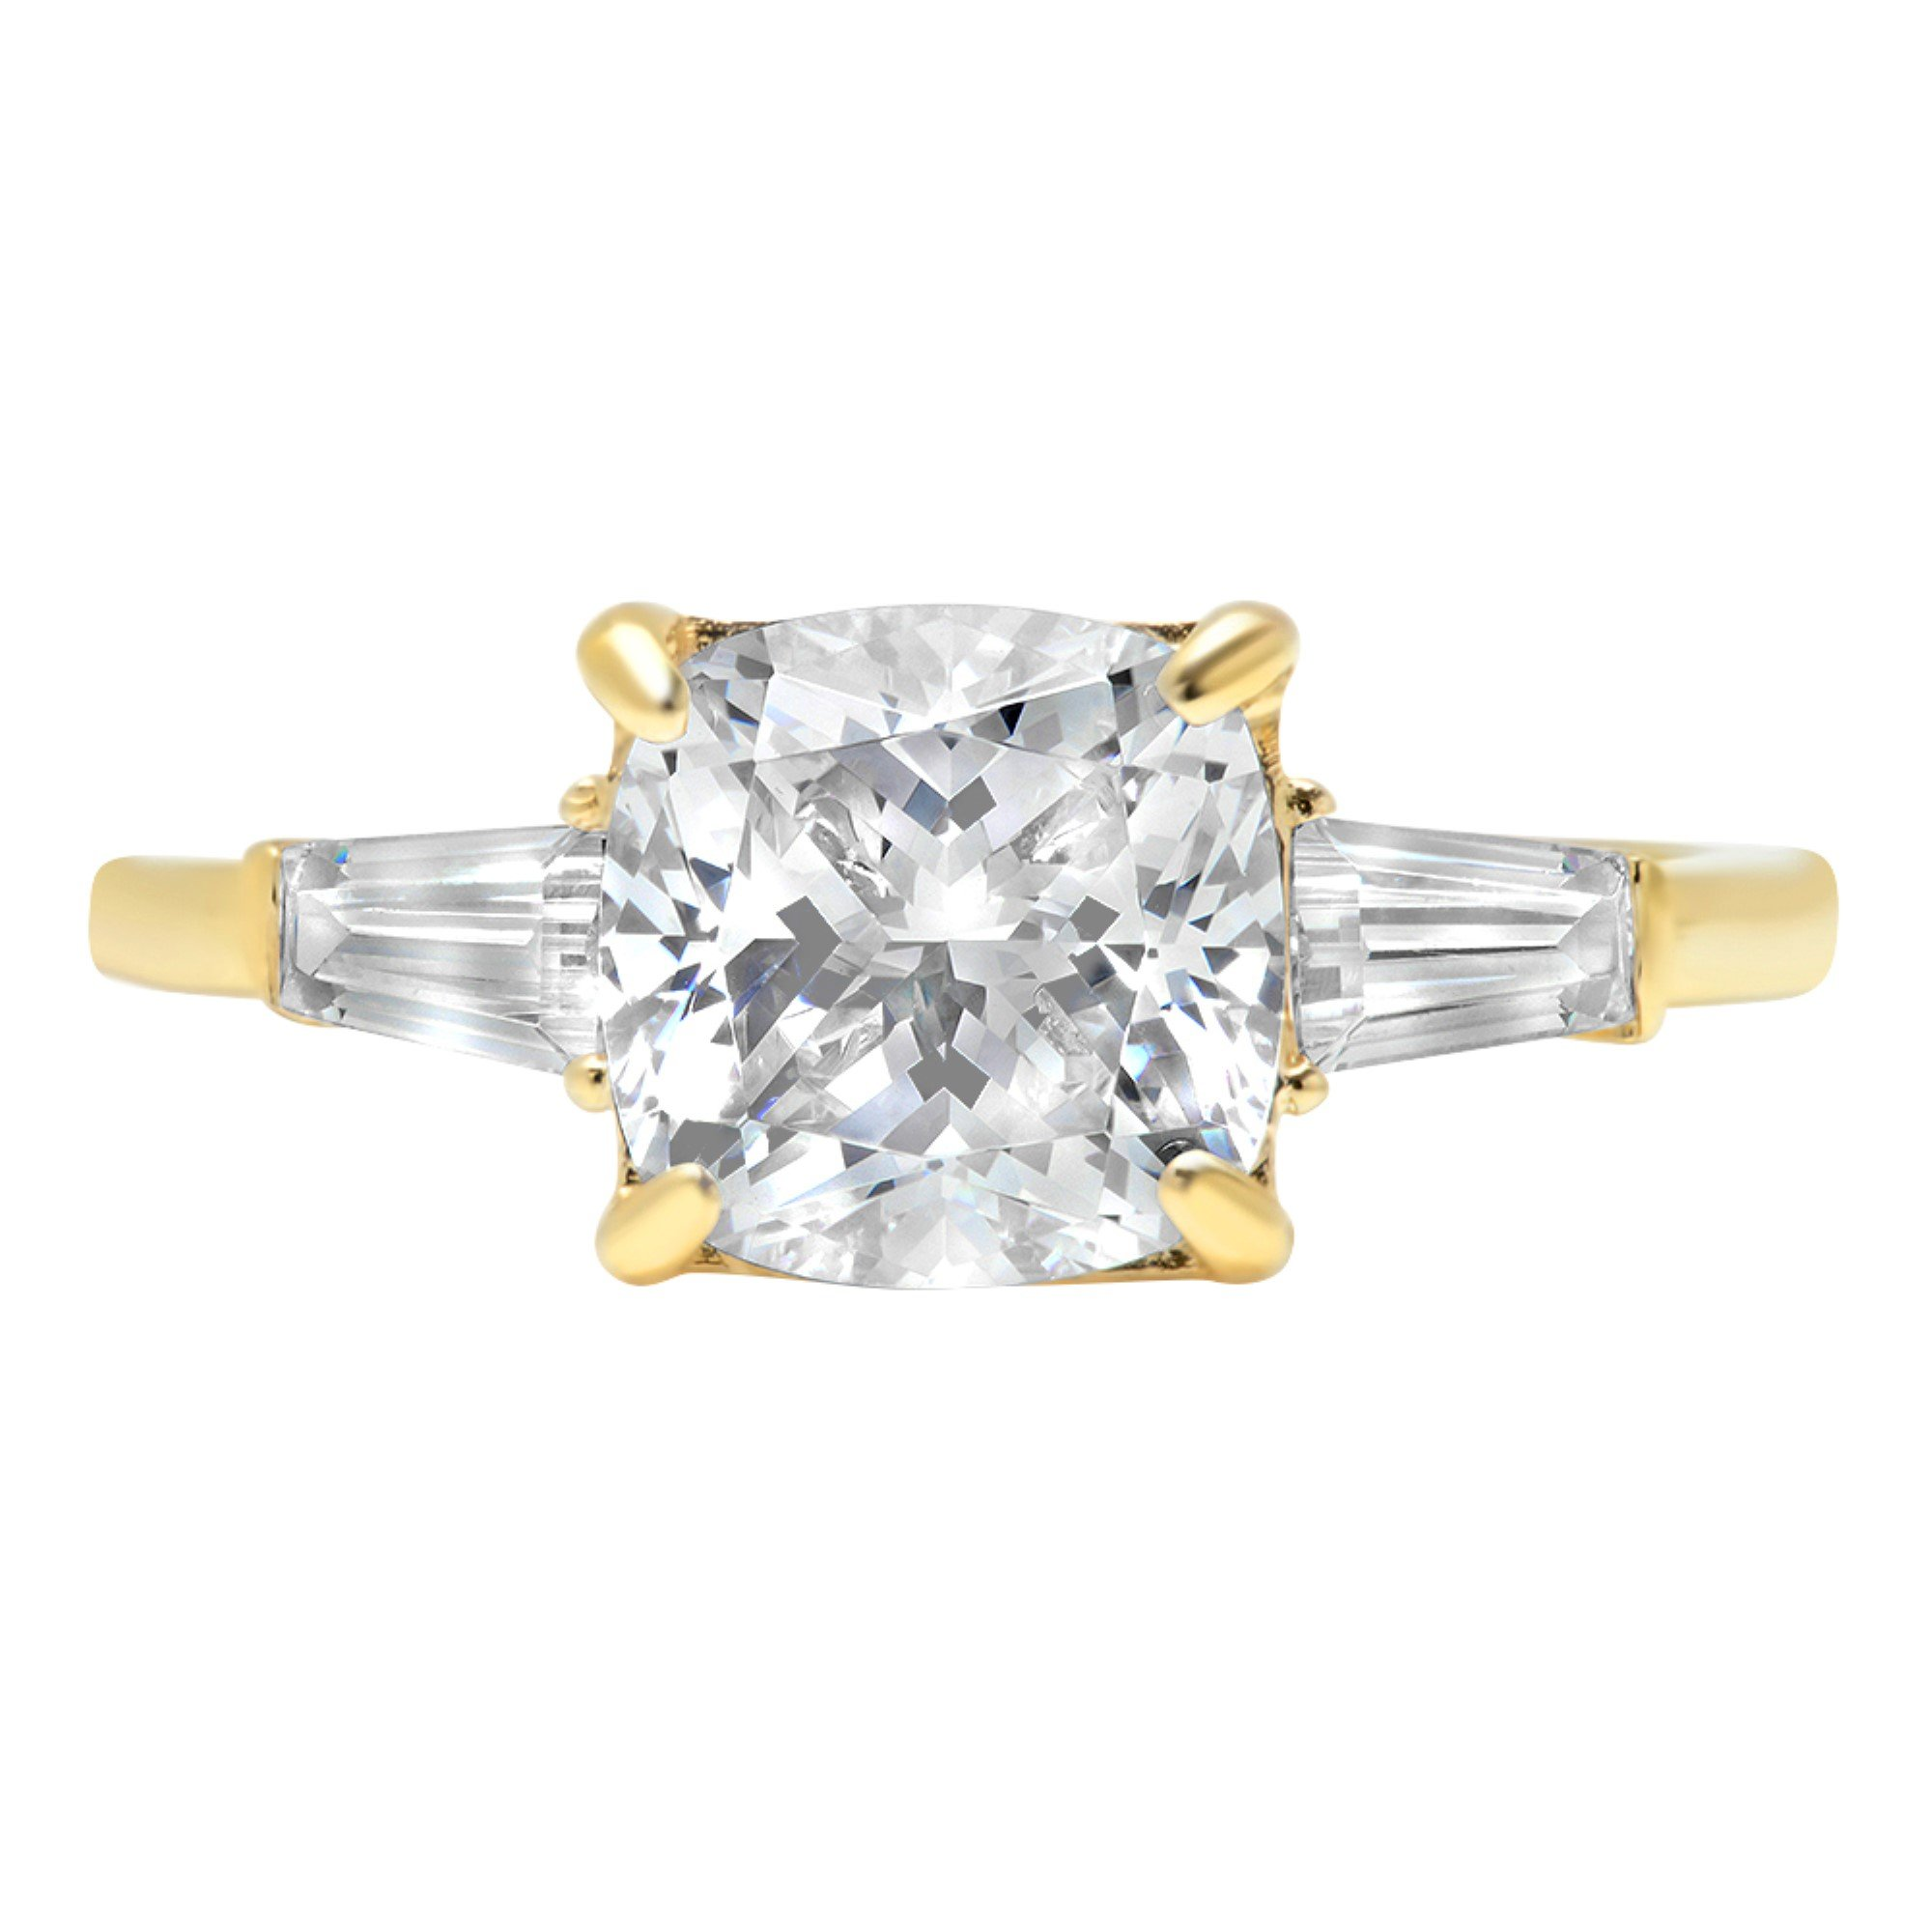 14k Yellow Gold 3.3ct Radiant Baguette 3-Stone Classic Solitaire Designer Wedding Bridal Statement Anniversary Statement Engagement Promise Ring, 7.75, 7.75